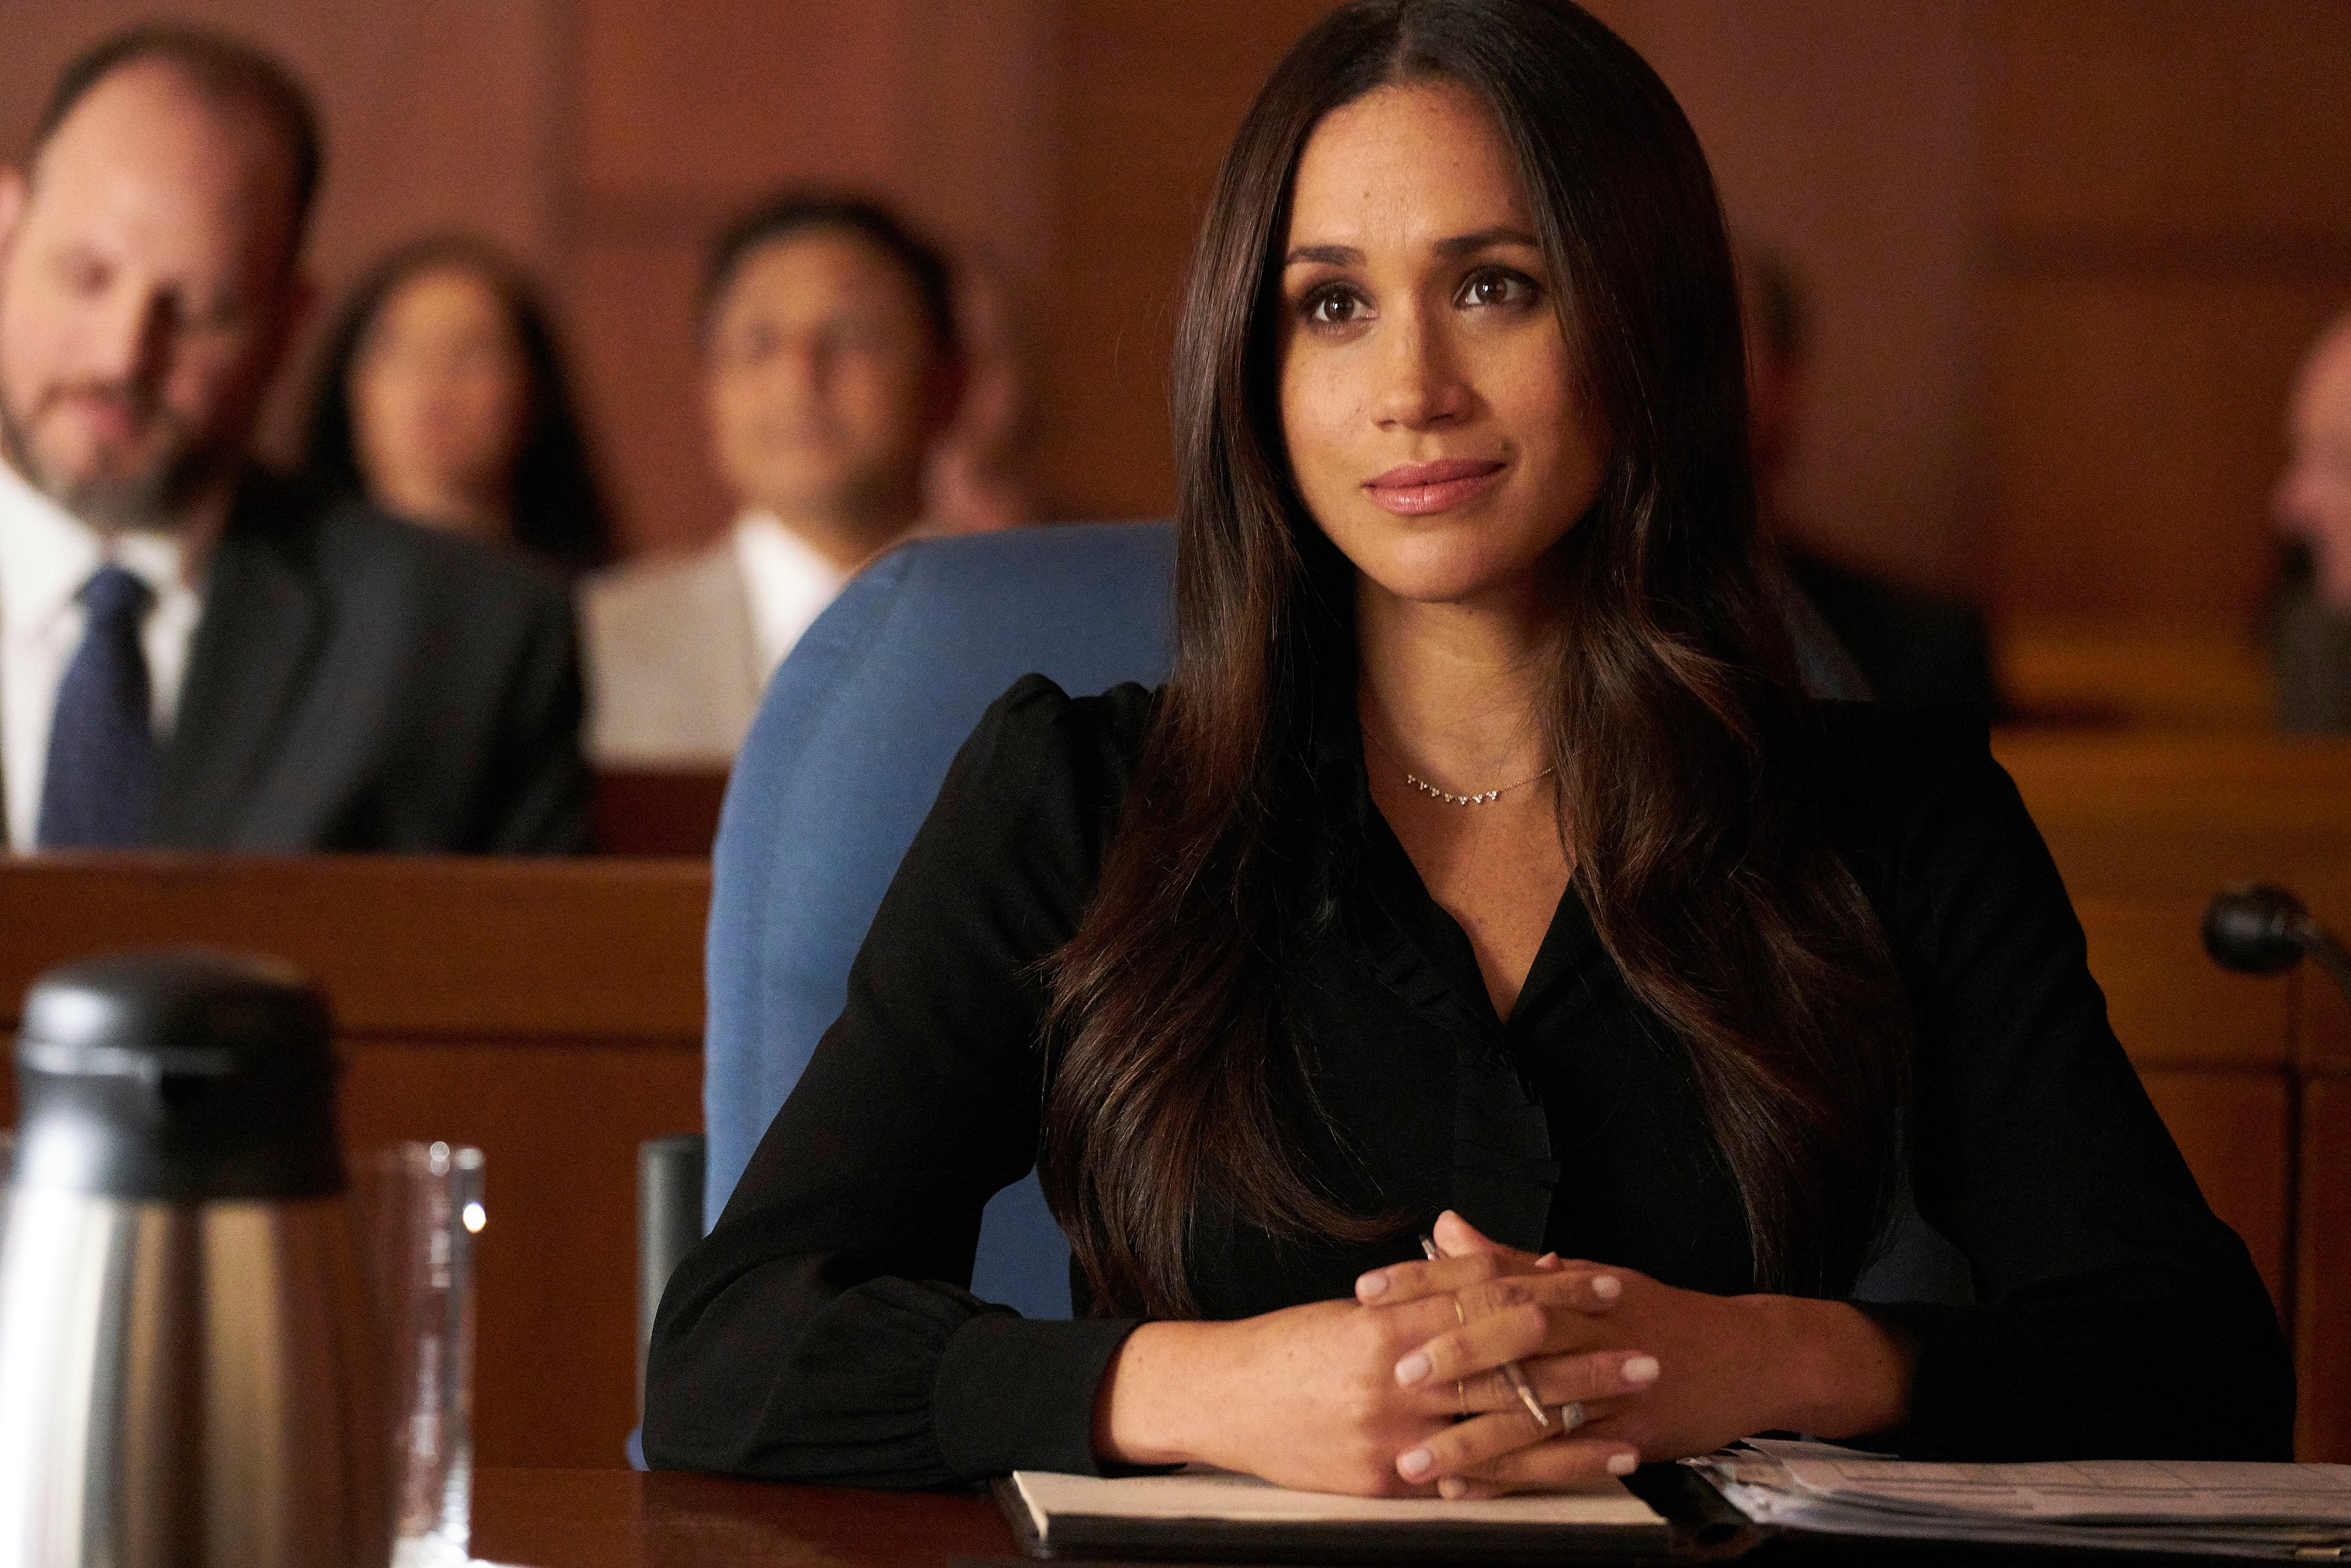 meghan markle is officially done with suits here s how she exited the show the washington post meghan markle is officially done with